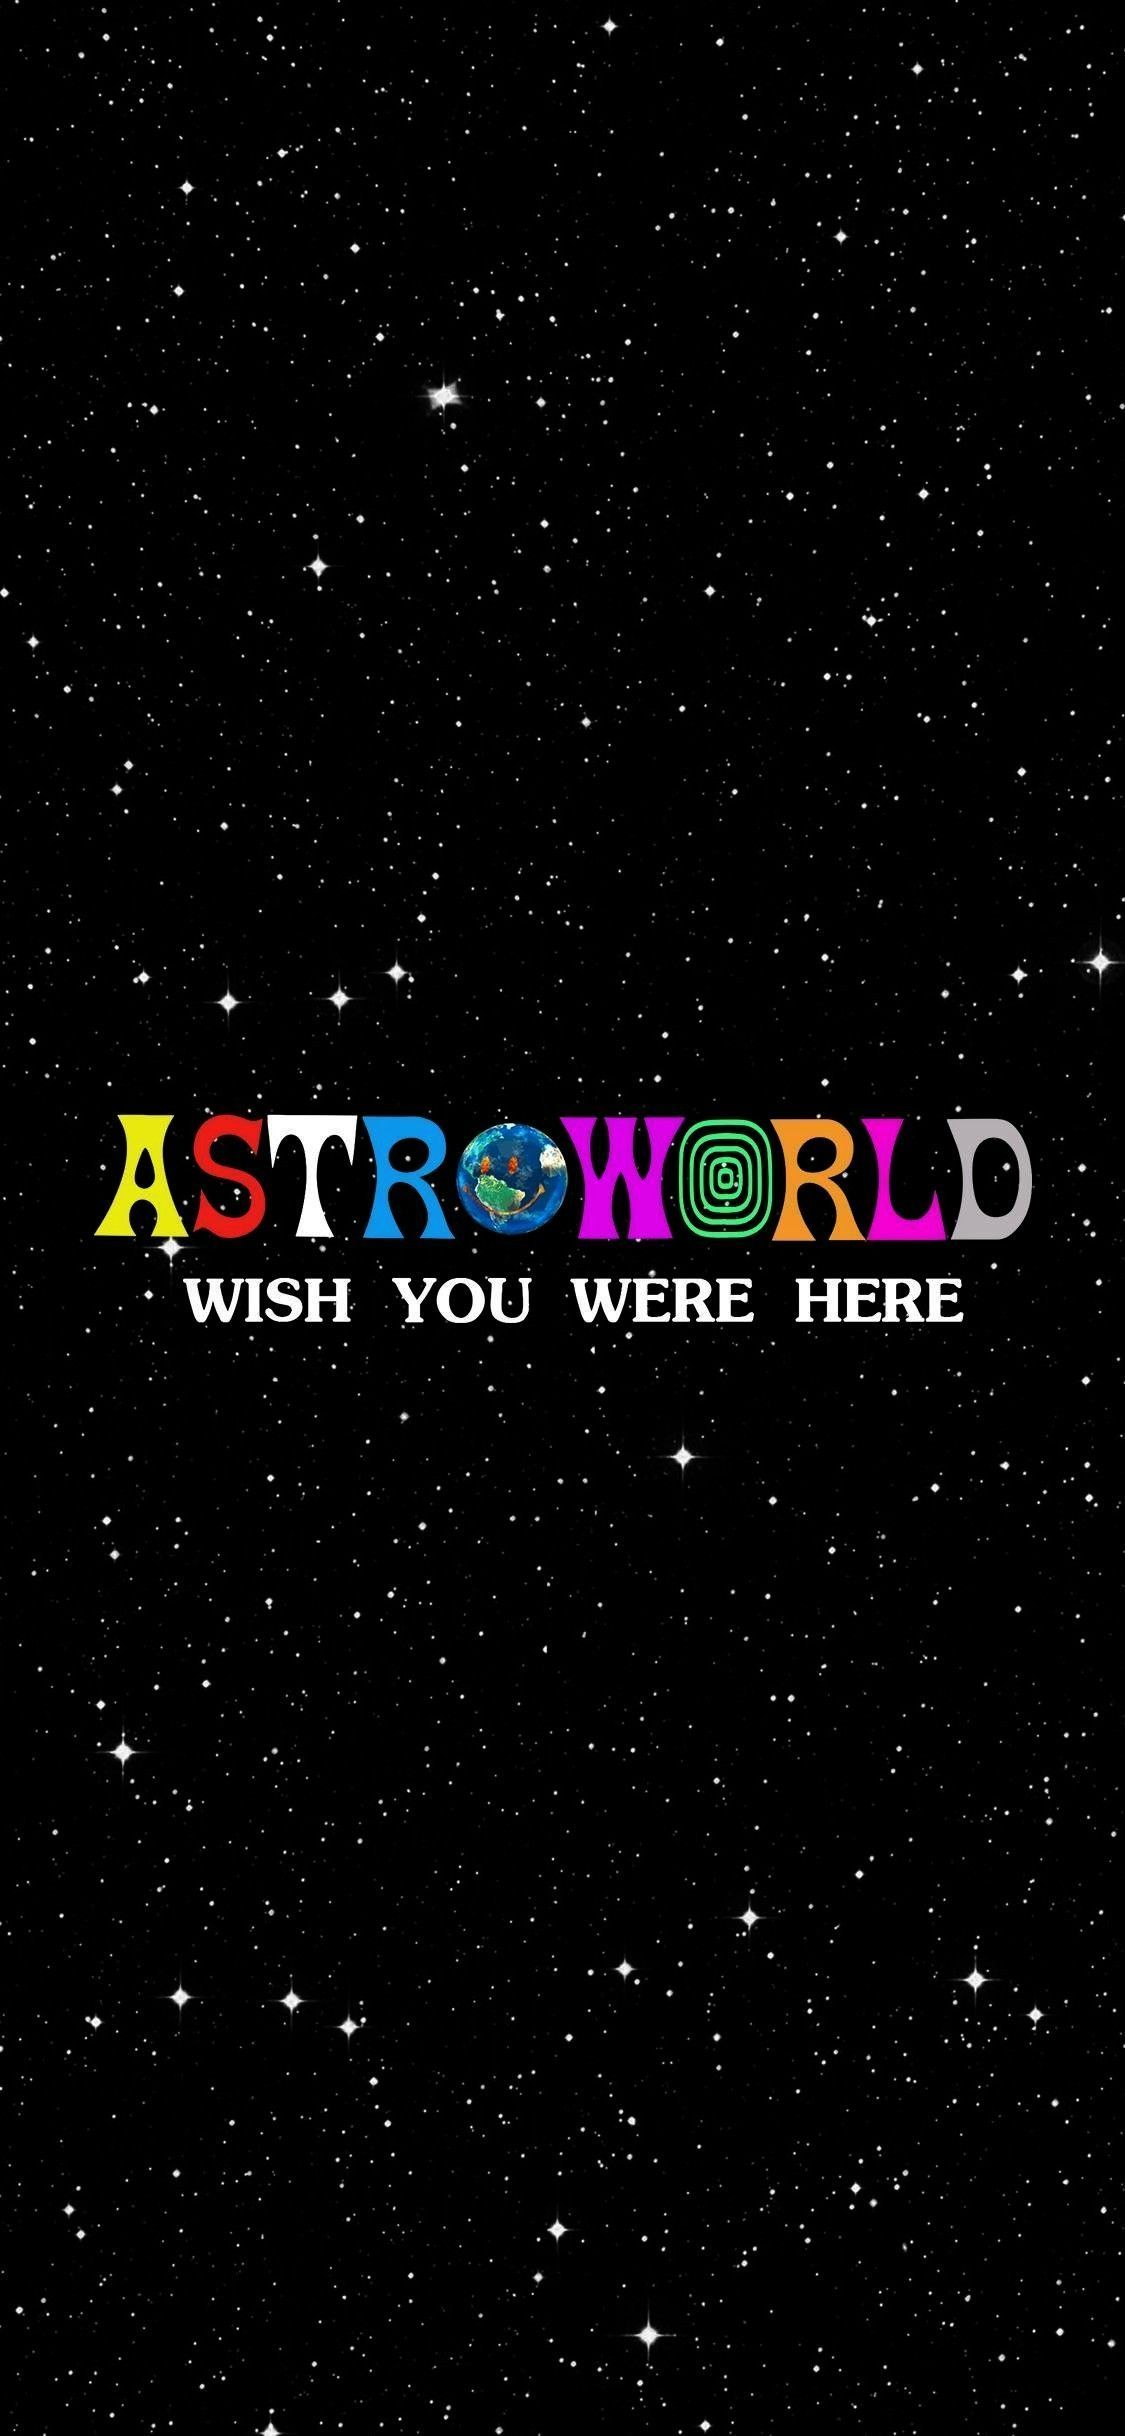 Travisscottwallpapers Astroworld Wallpaper Travis Flame Scott Wish Were Here You Laastroworld Wall In 2020 Painting Wallpaper Hype Wallpaper Retro Wallpaper